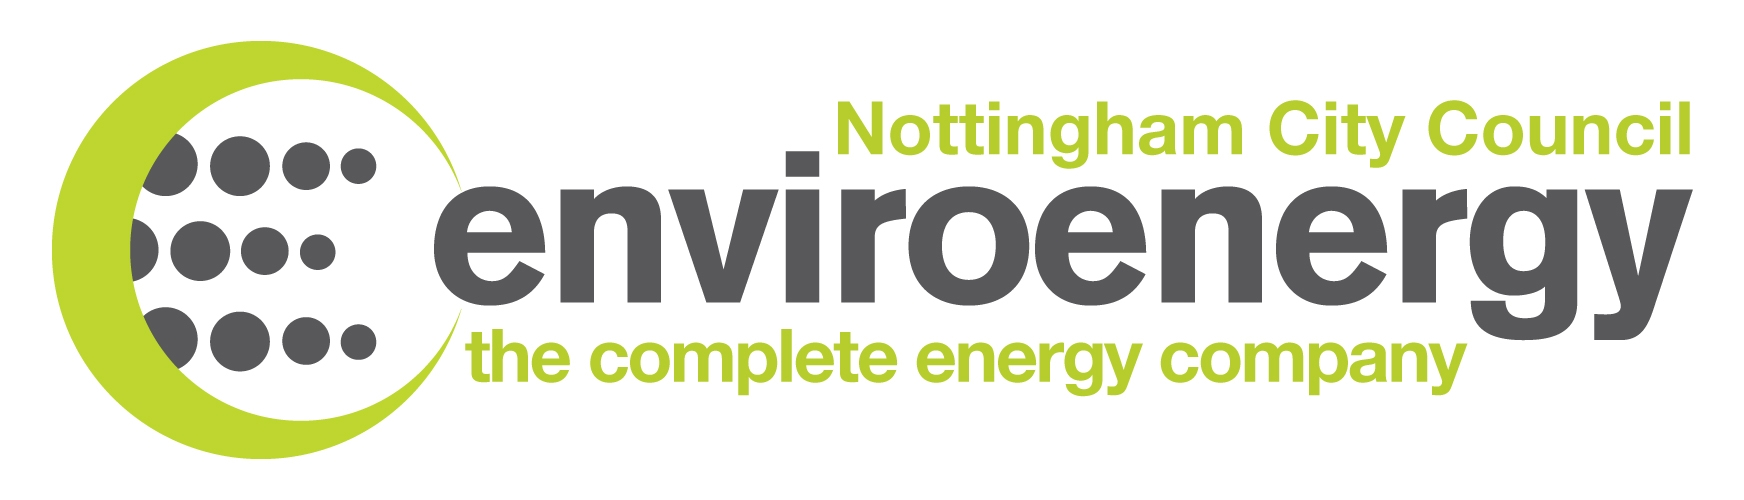 EnviroEnergy Limited